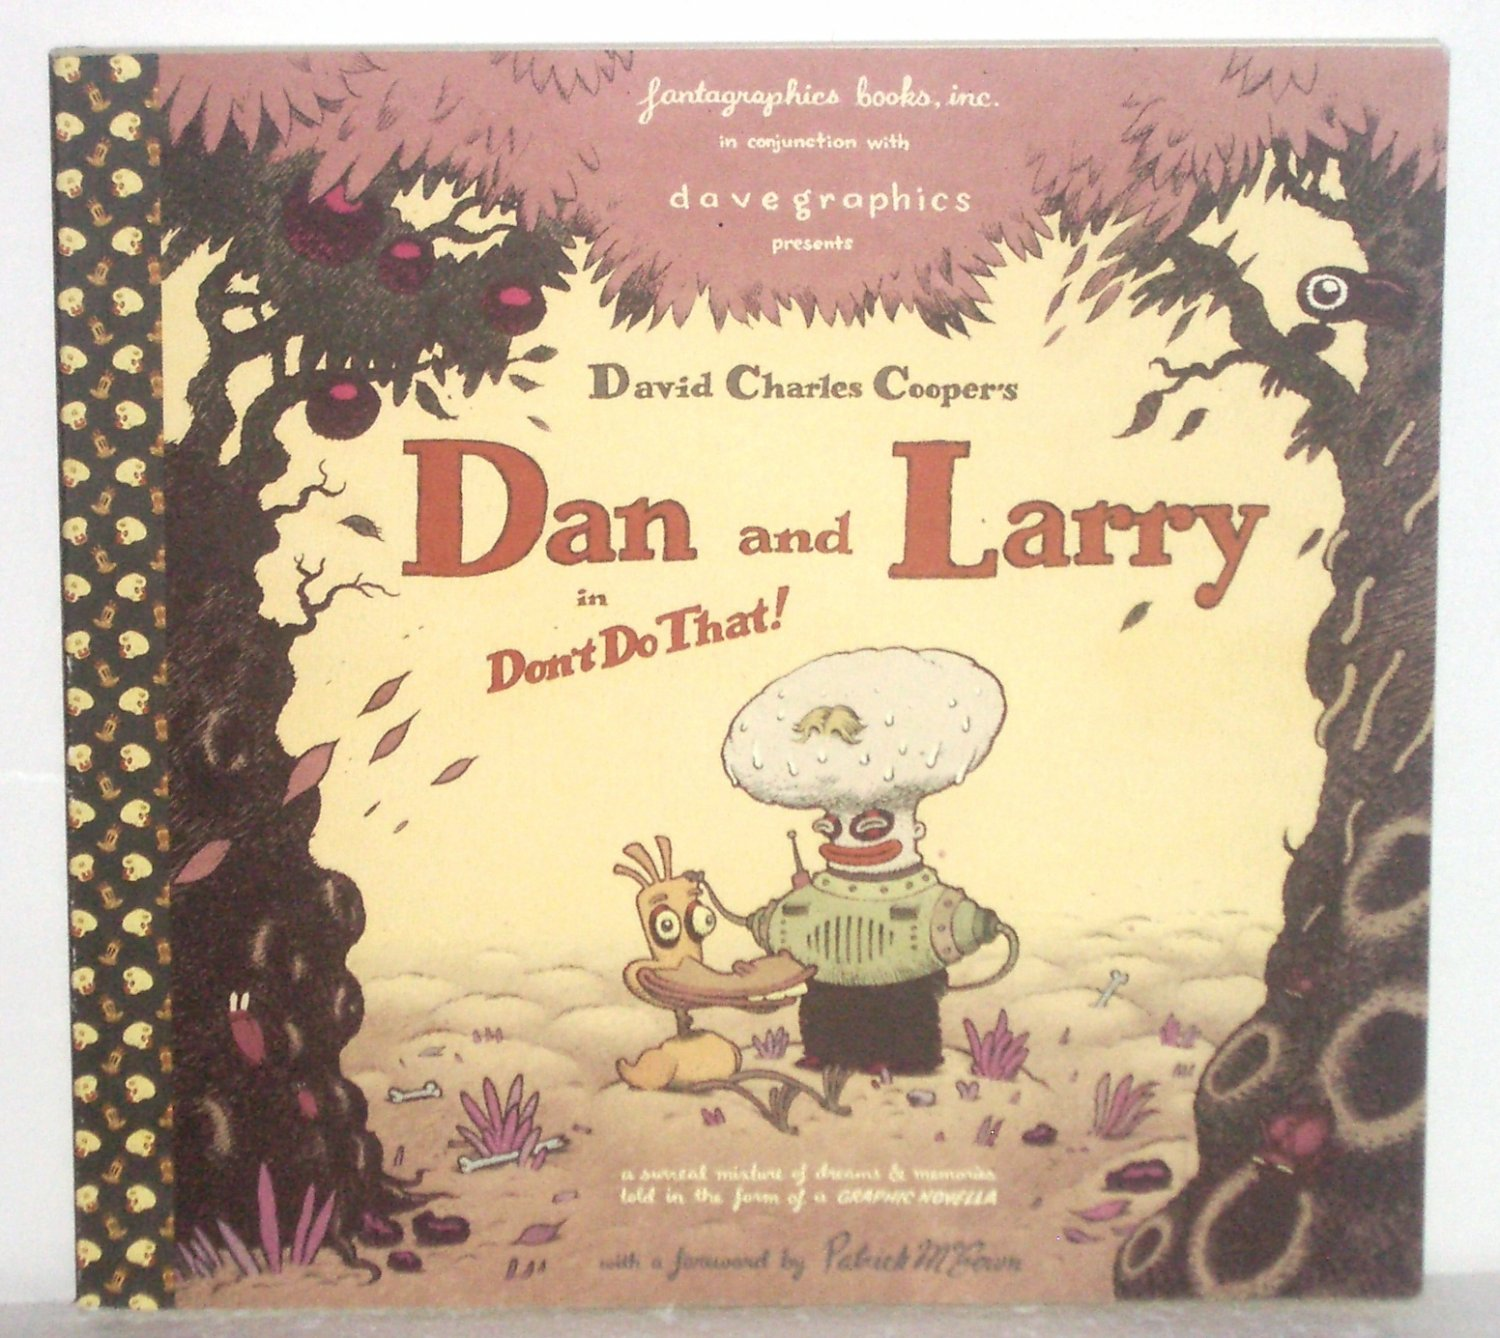 Dan and Larry in Don't Do That! by DAVID CHARLES COOPER Graphic Novel 2001